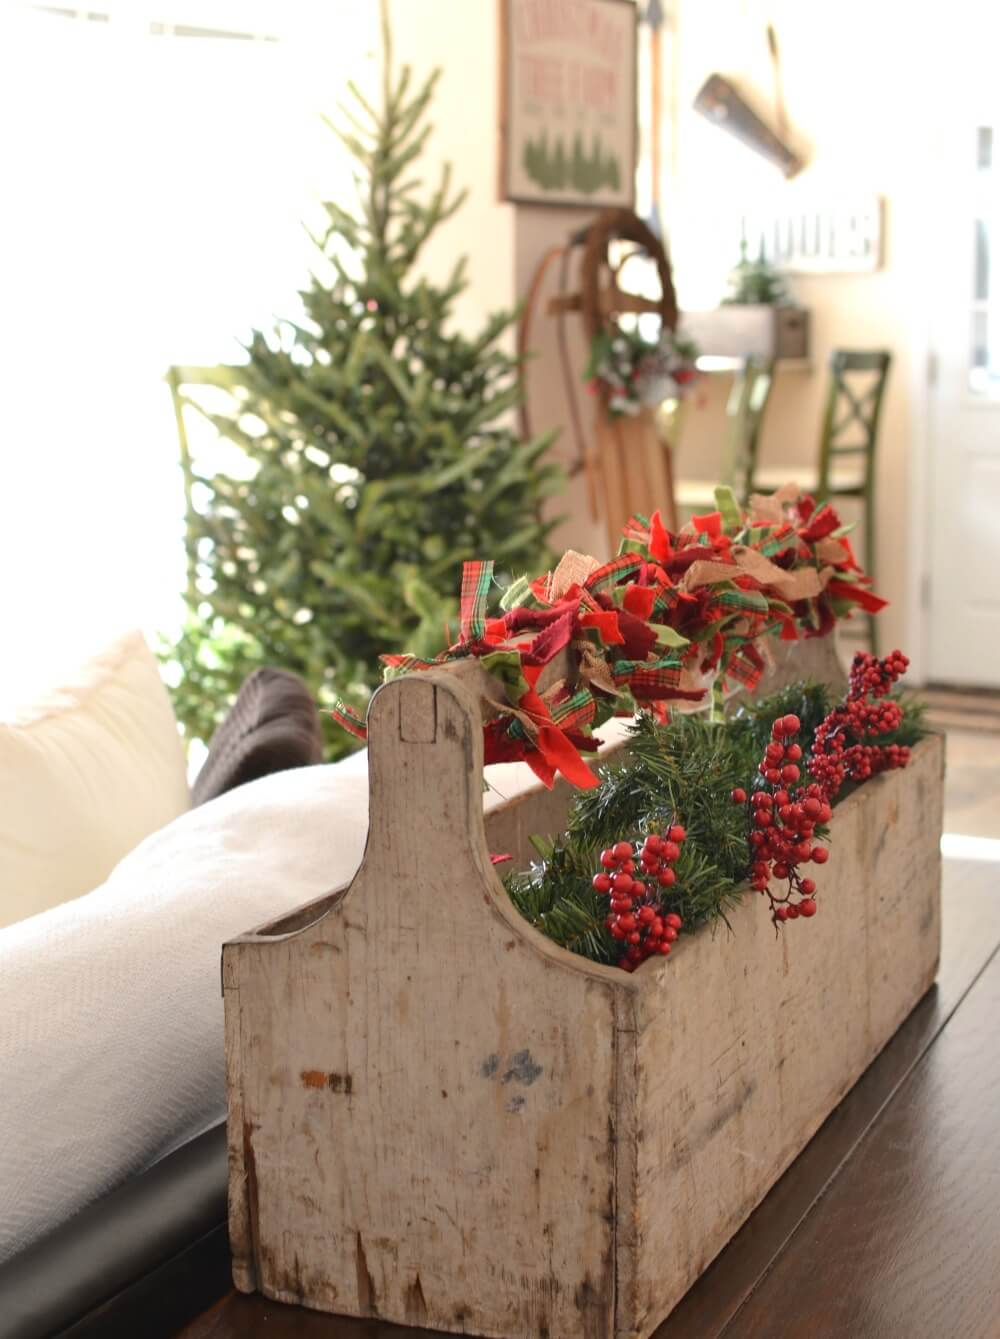 Primitive Caddy Full of Holiday Cheer thewowdecor